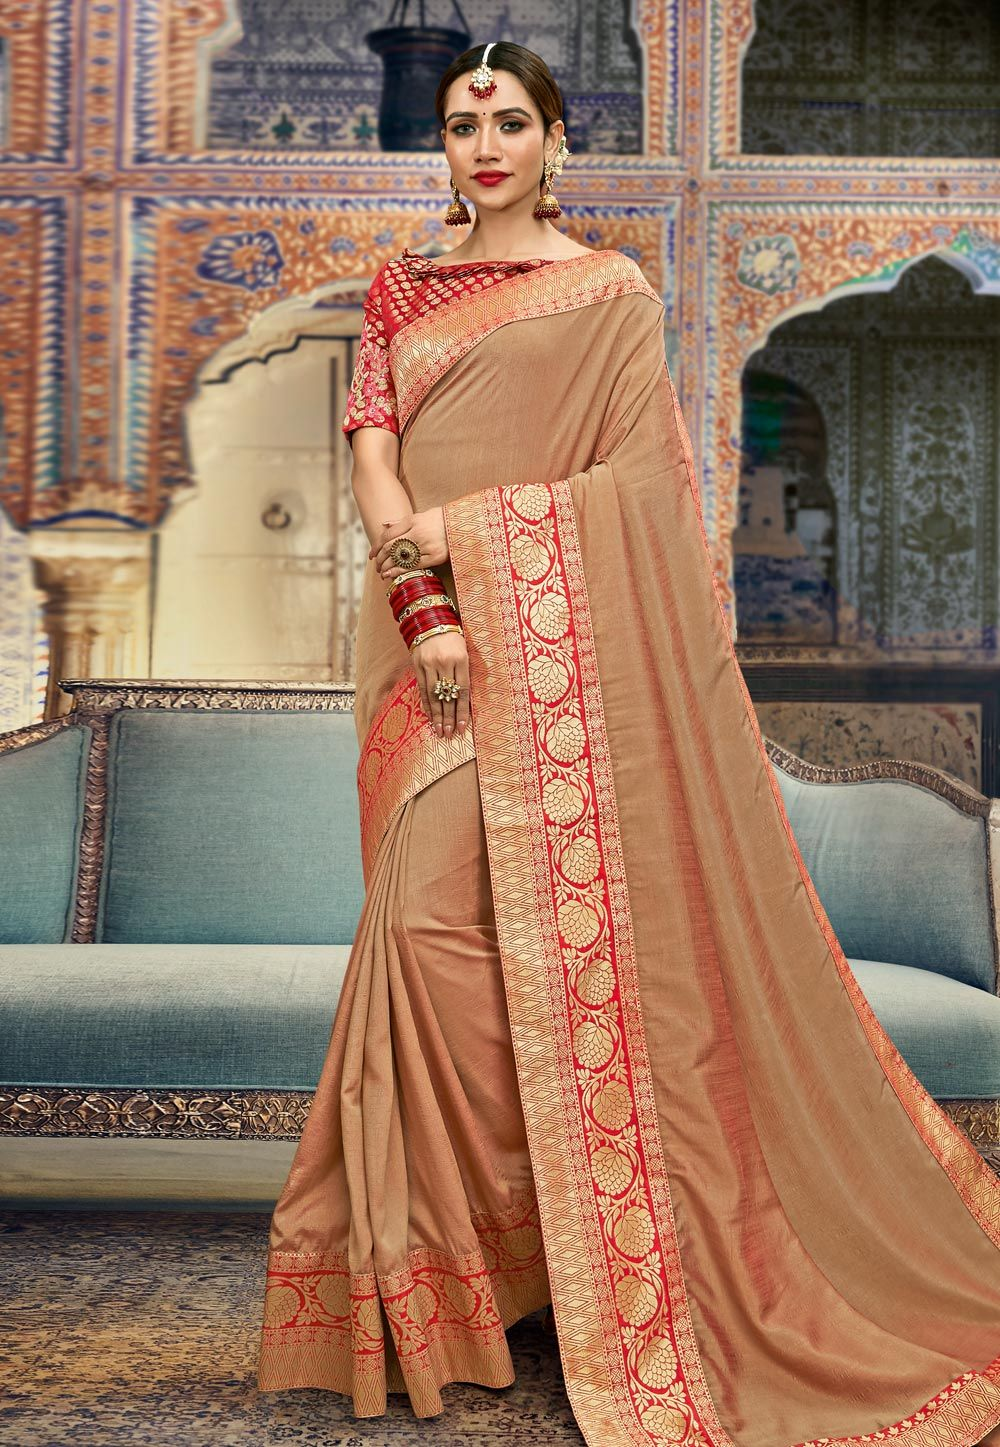 489434f86e Buy Beige Silk Saree With Blouse 167292 with blouse online at lowest price  from vast collection of sarees at Indianclothstore.com.